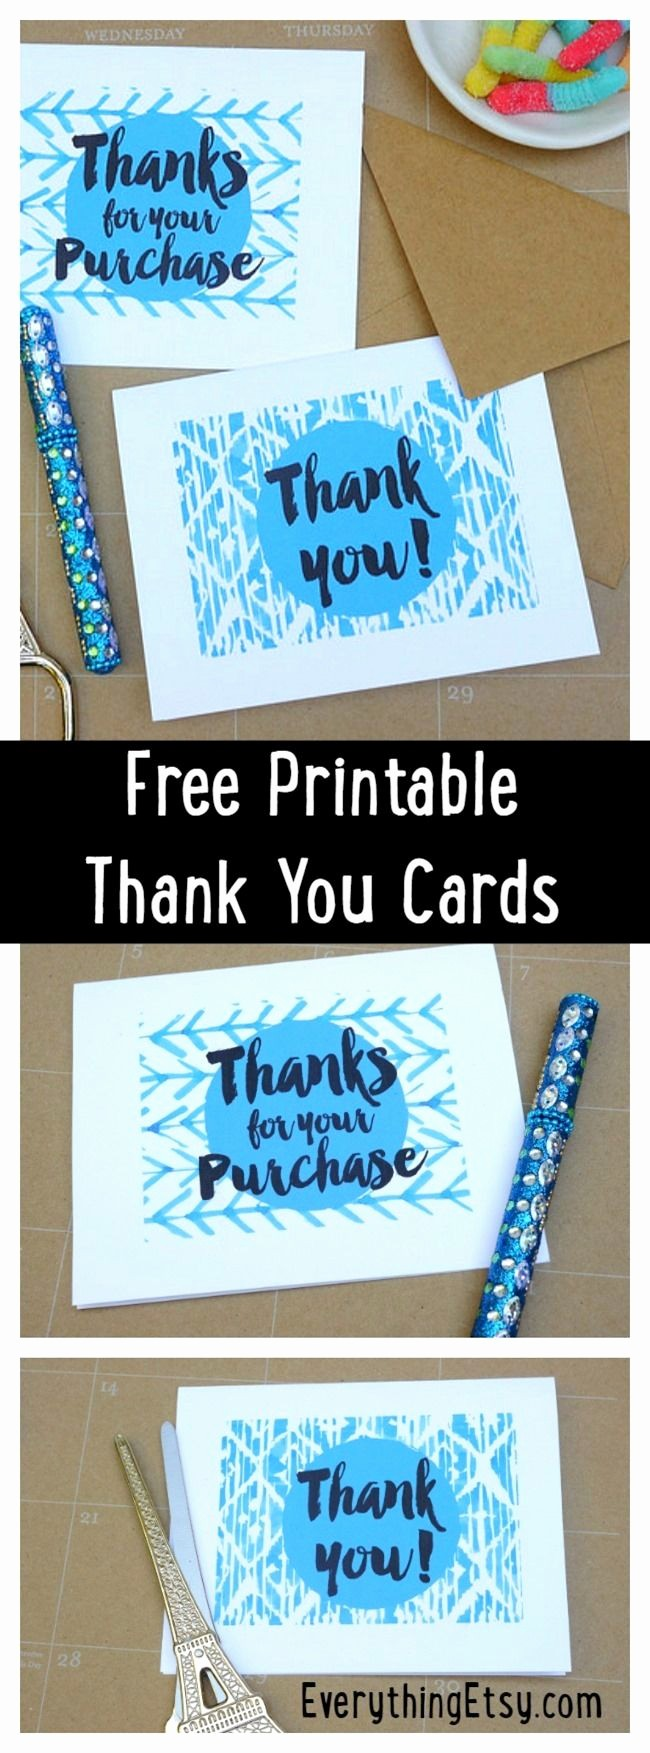 Free Printable Thank You Certificates Awesome 25 Best Ideas About Business Thank You Cards On Pinterest